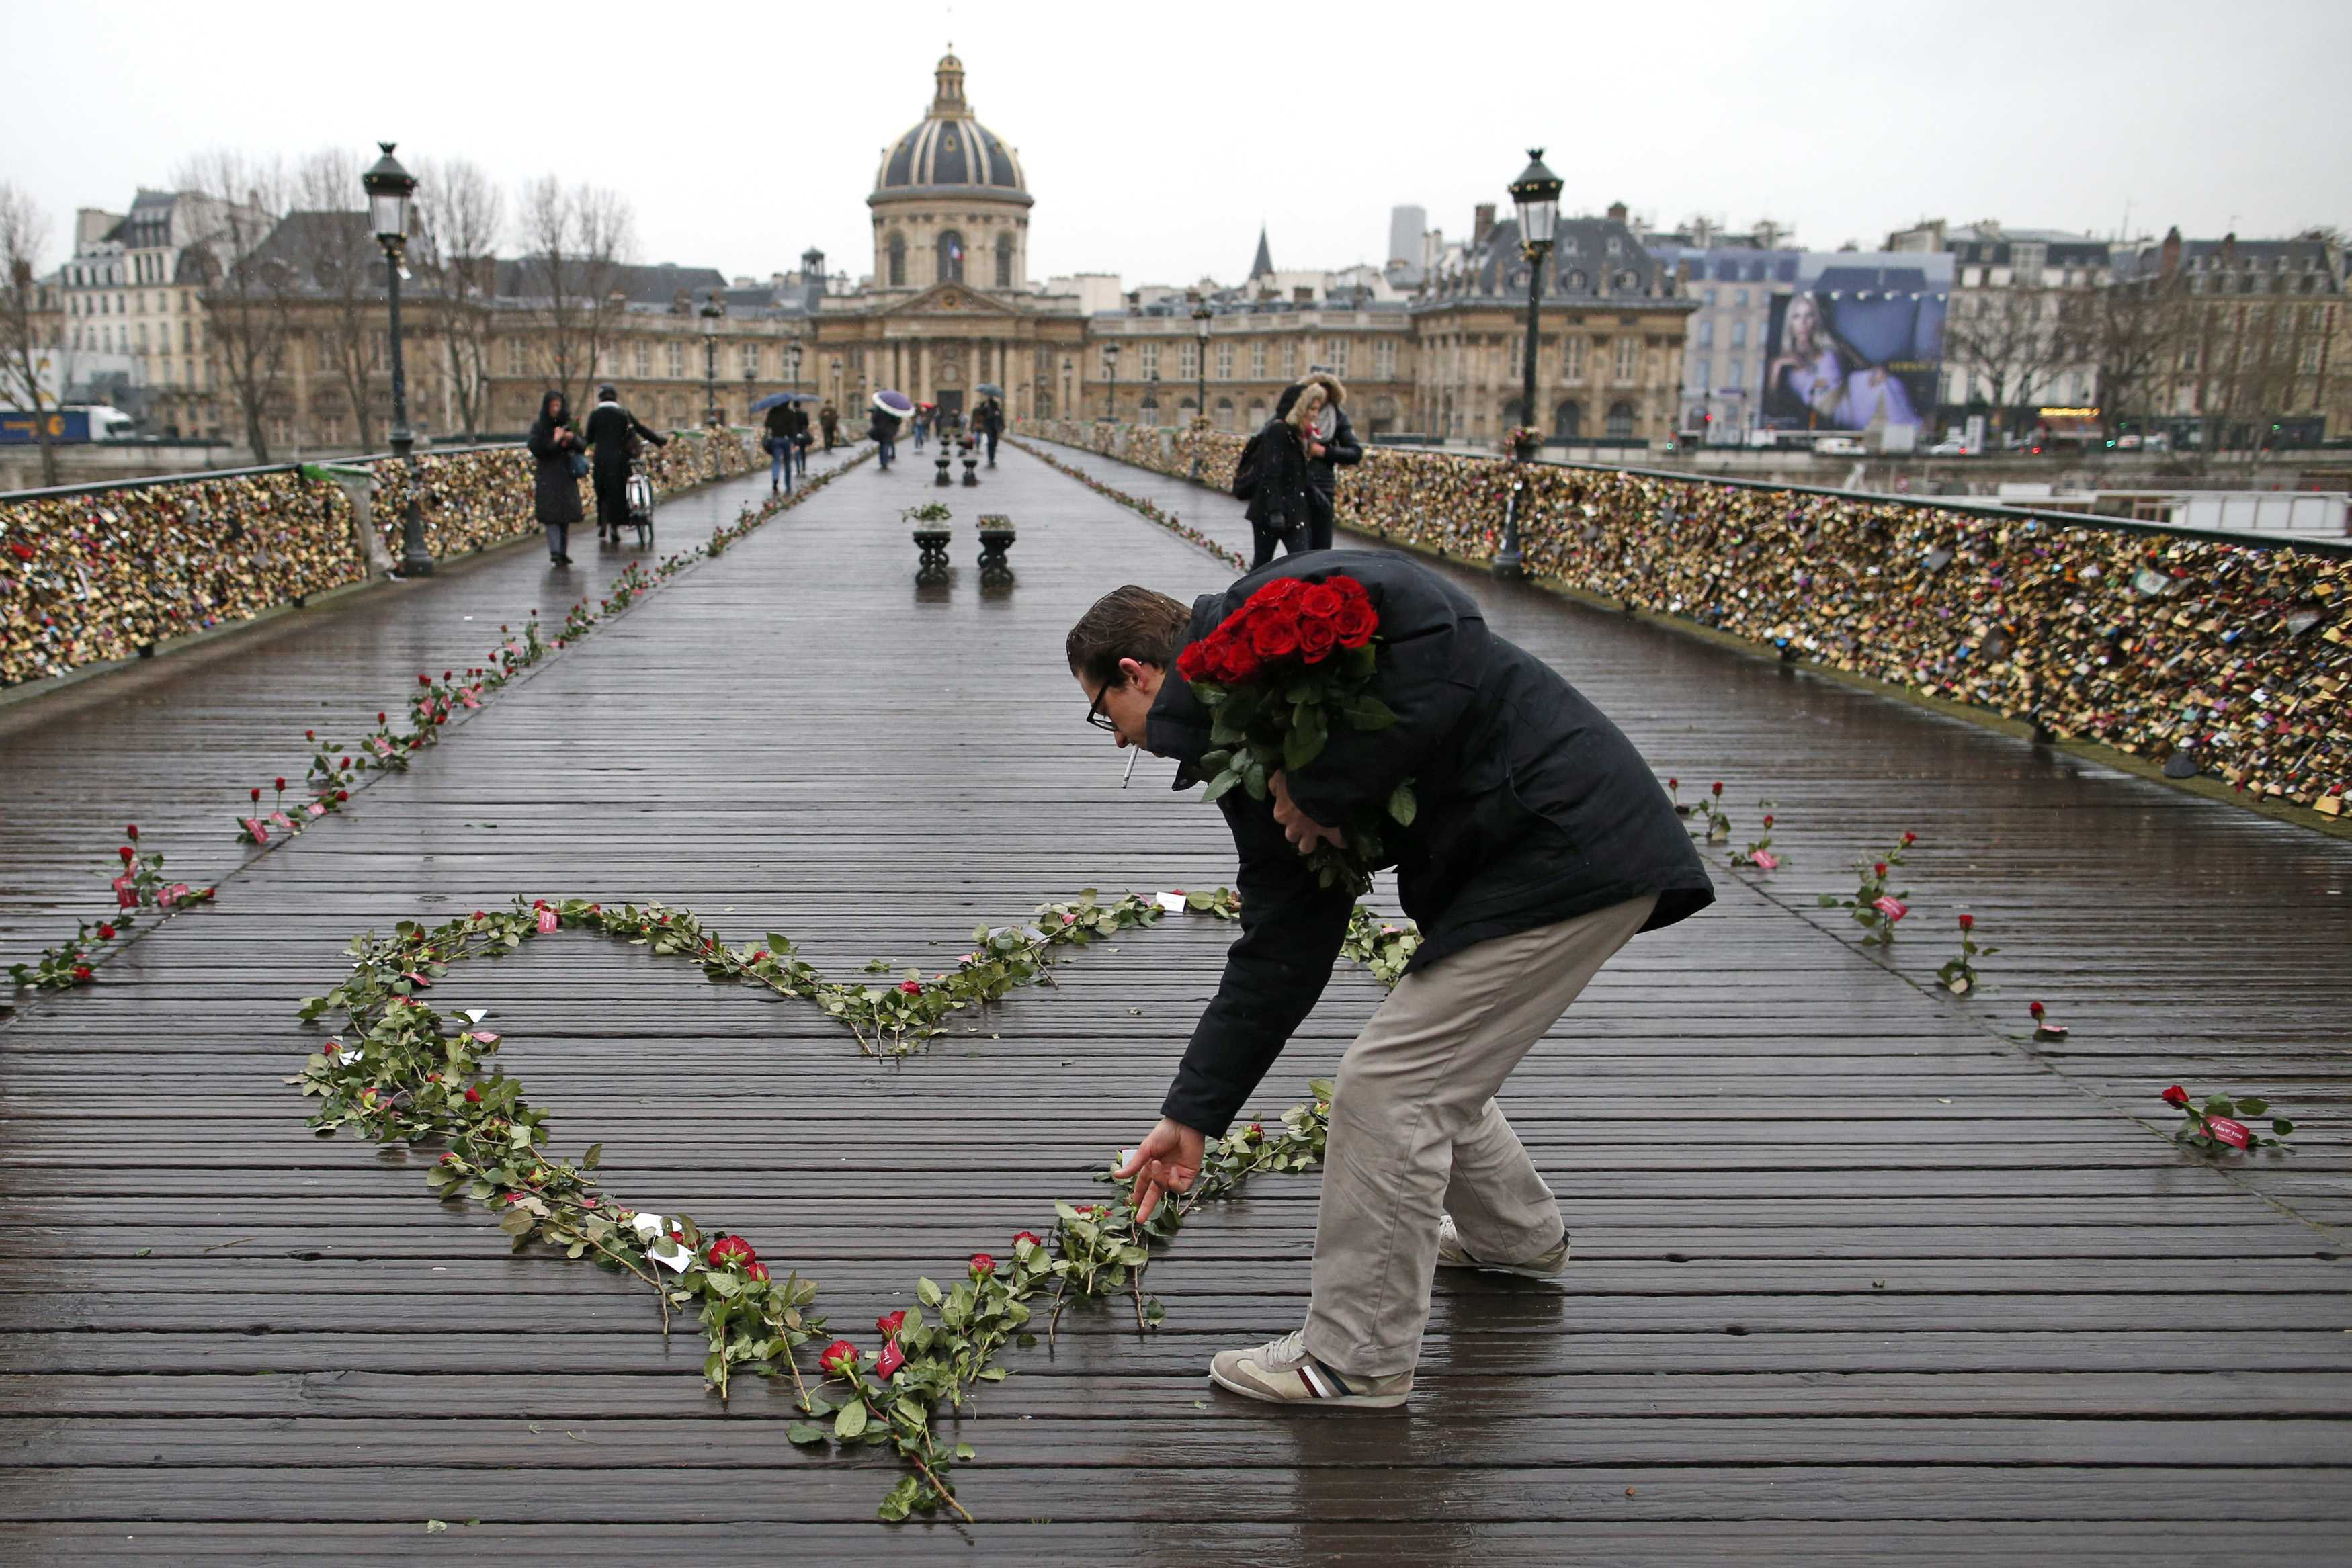 Roses are placed on the Pont des Arts over the River Seine as part on a publicity campaign on Valentine's Day in Paris February 14, 2014. REUTERS/Benoit Tessier (FRANCE - Tags: SOCIETY)